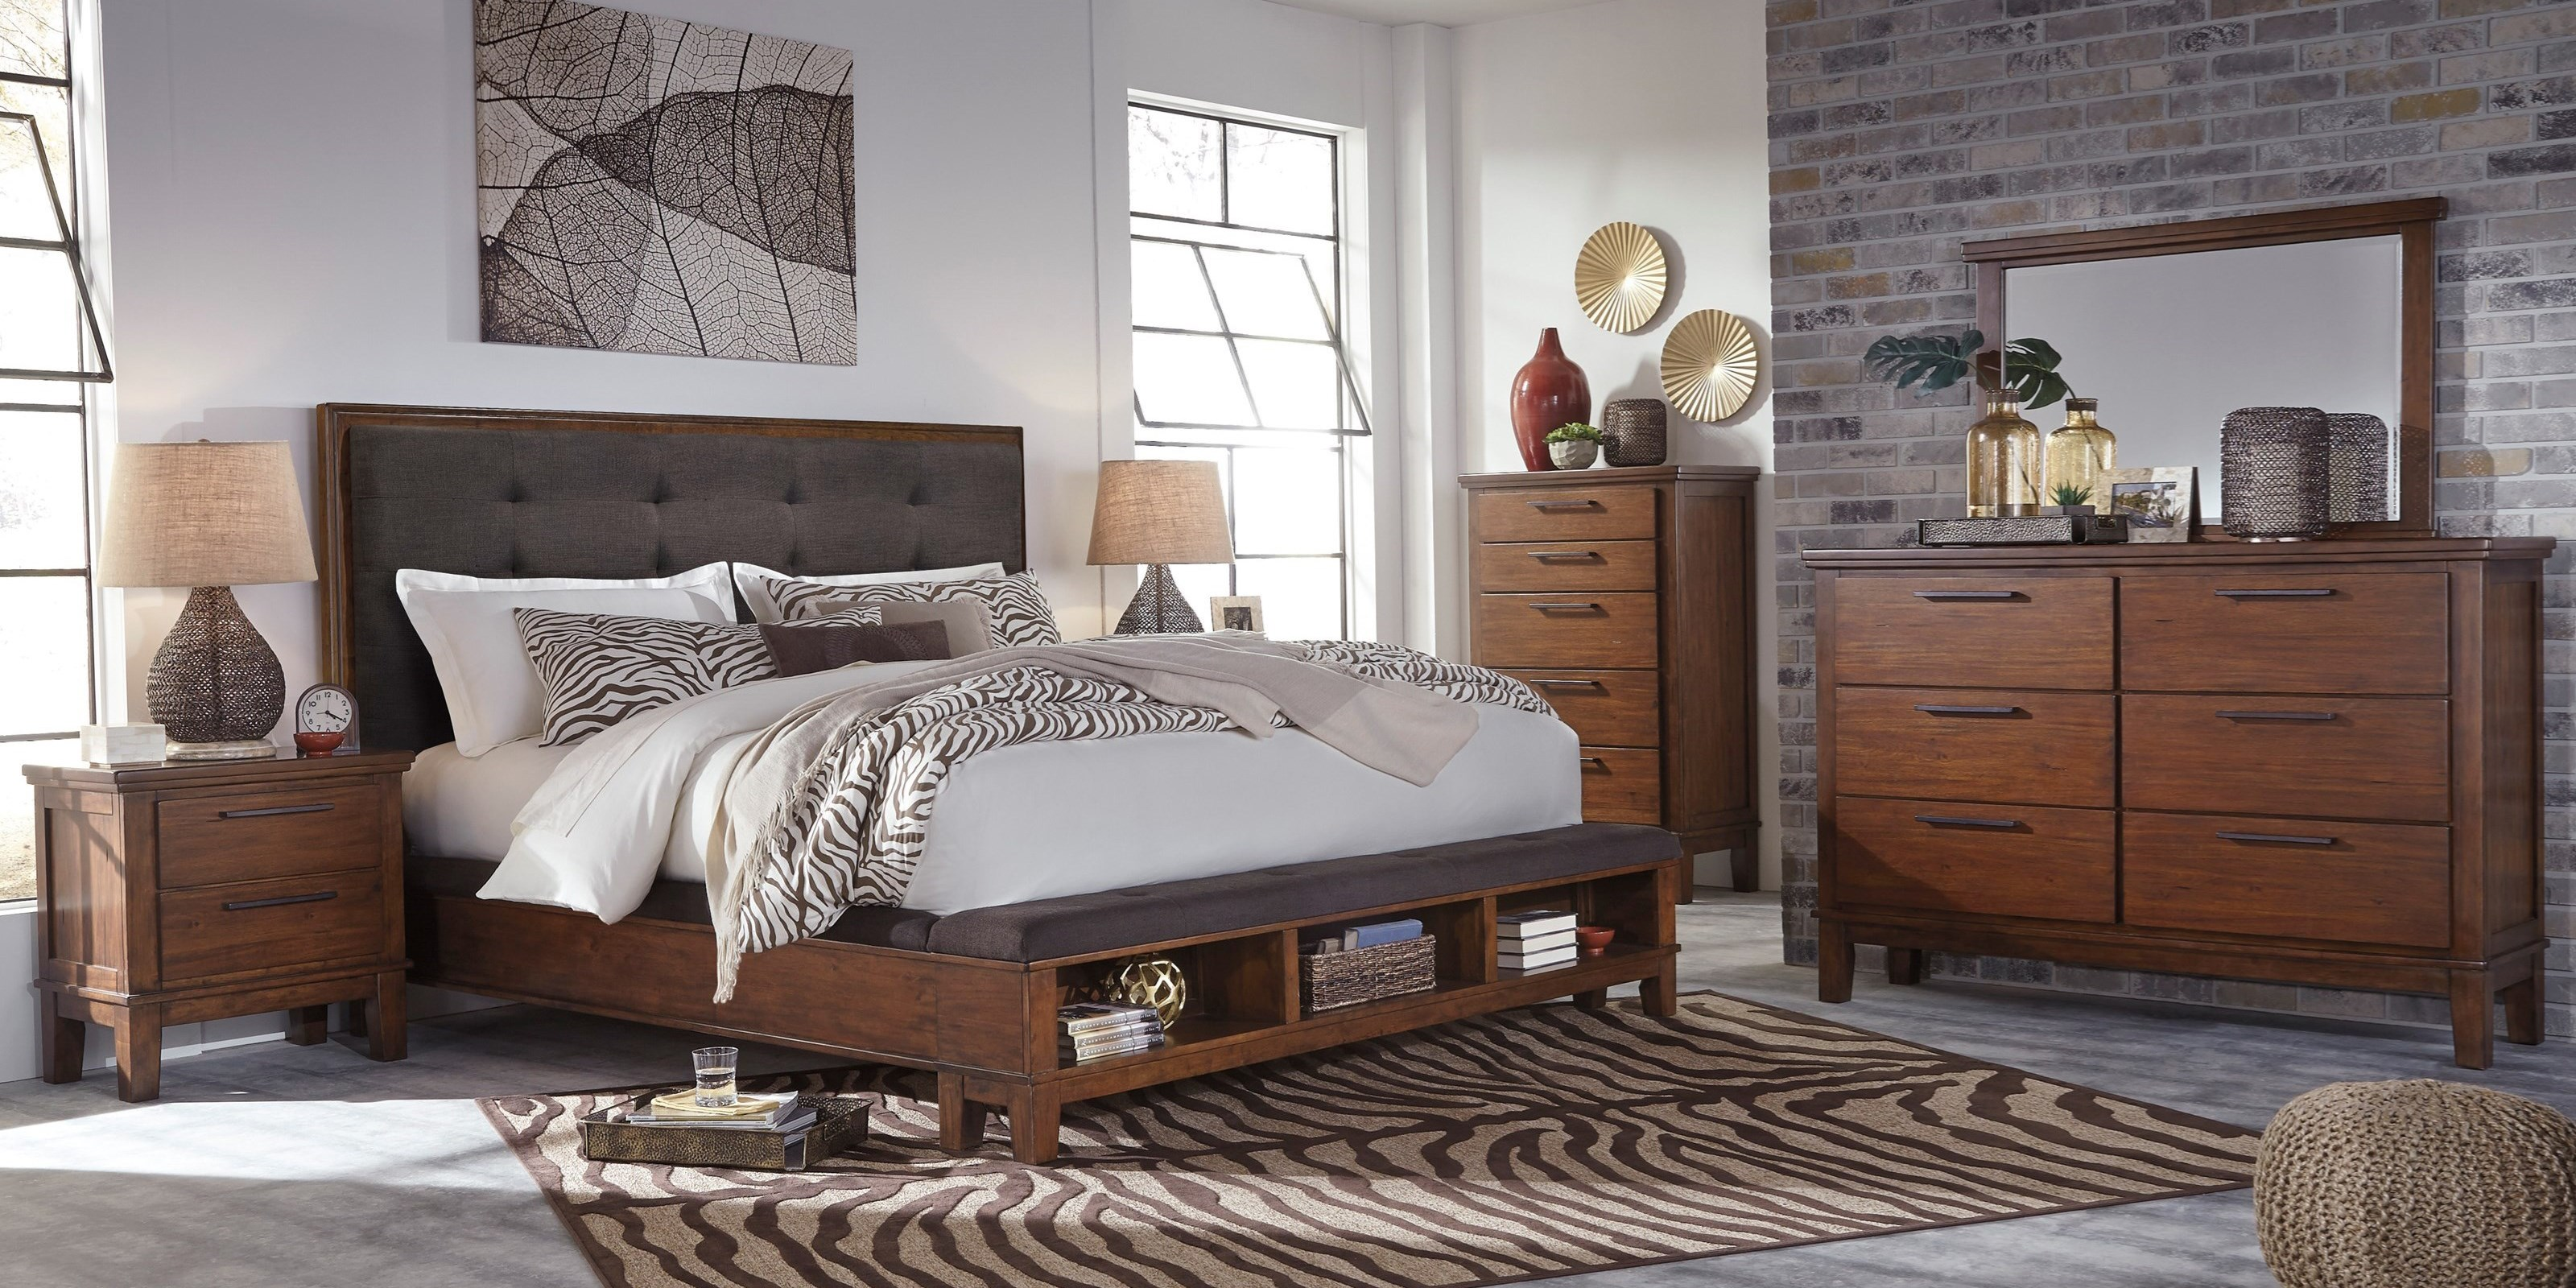 Upholstered bed with bench